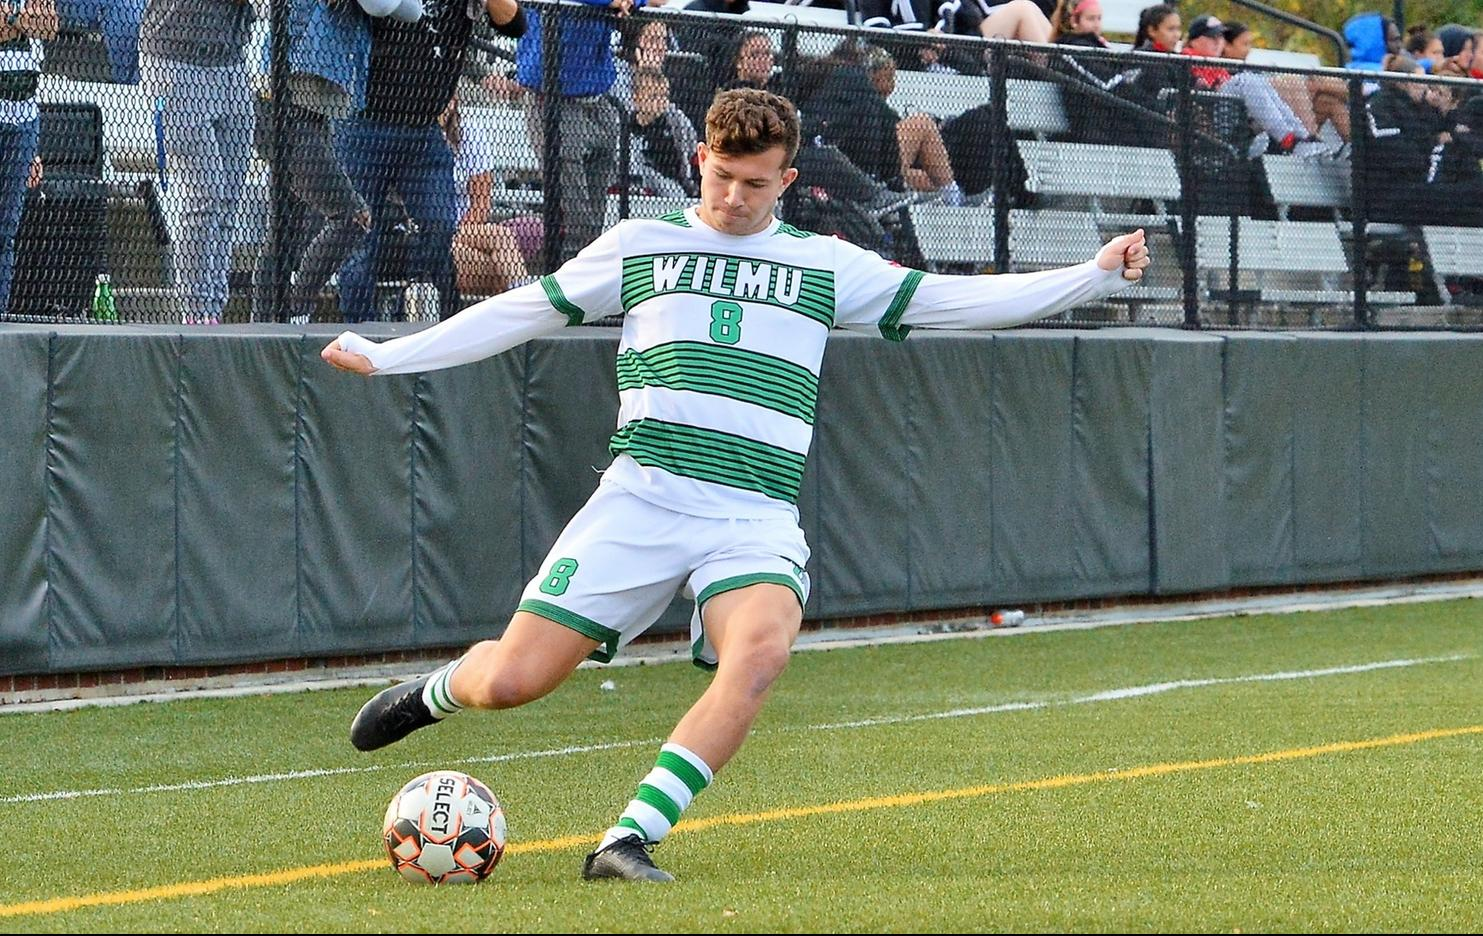 File photo of Ben Jordan who scored two goals and added an assist at Chestnut Hill. Copyright 2019; Wilmington University. All rights reserved. Photo by James Jones. October 19, 2019 vs. Caldwell.